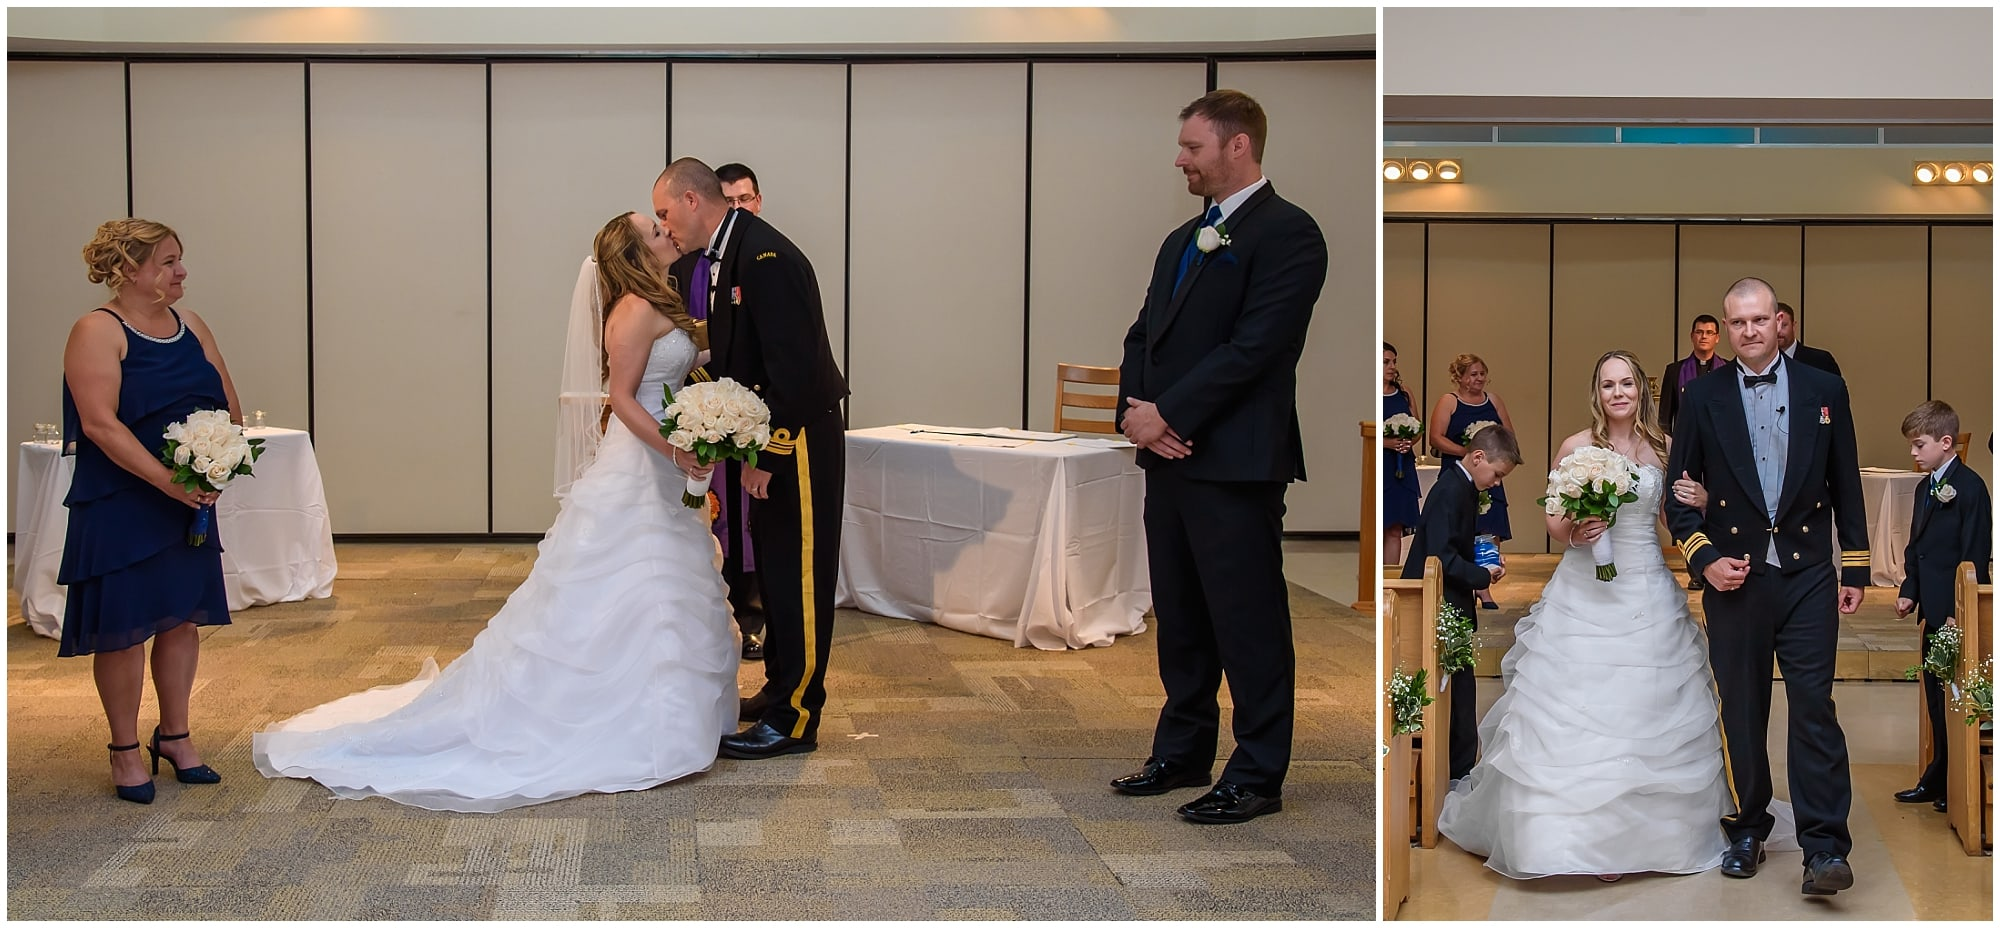 The bride and groom have their first kiss during their wedding at Juno Tower in Halifax.